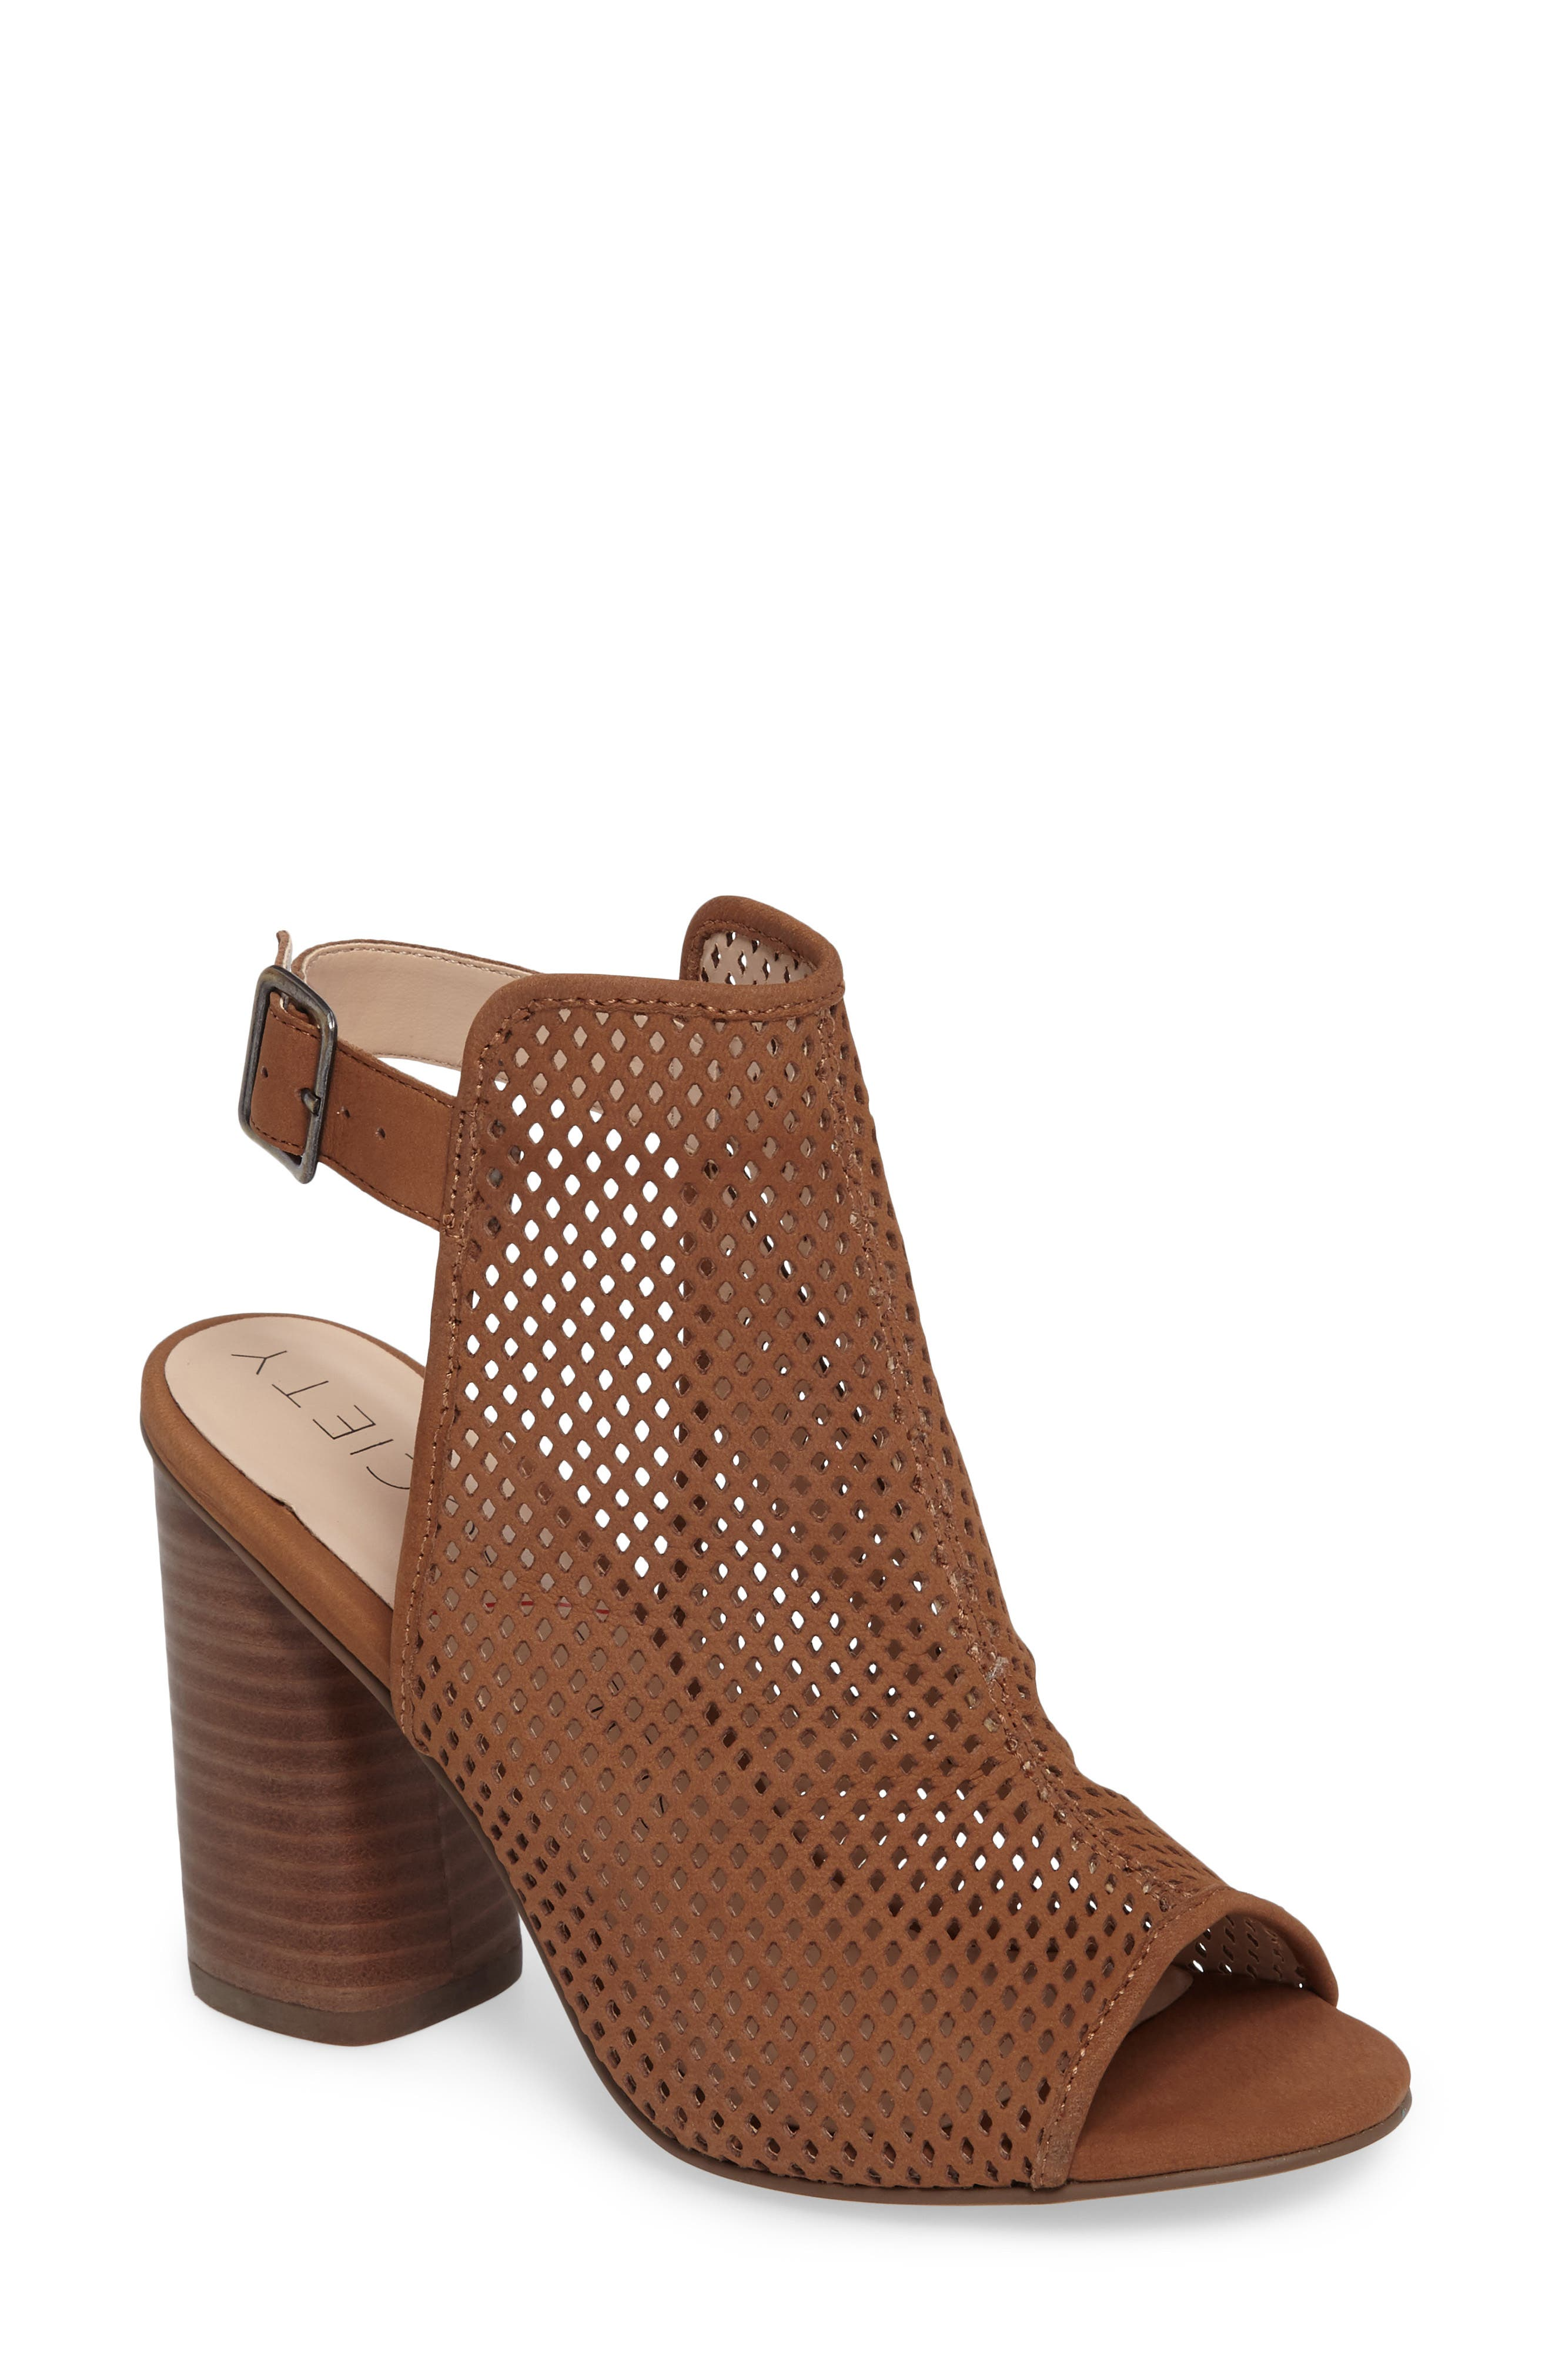 Sole Society Bombay Perforated Sandal (Women)